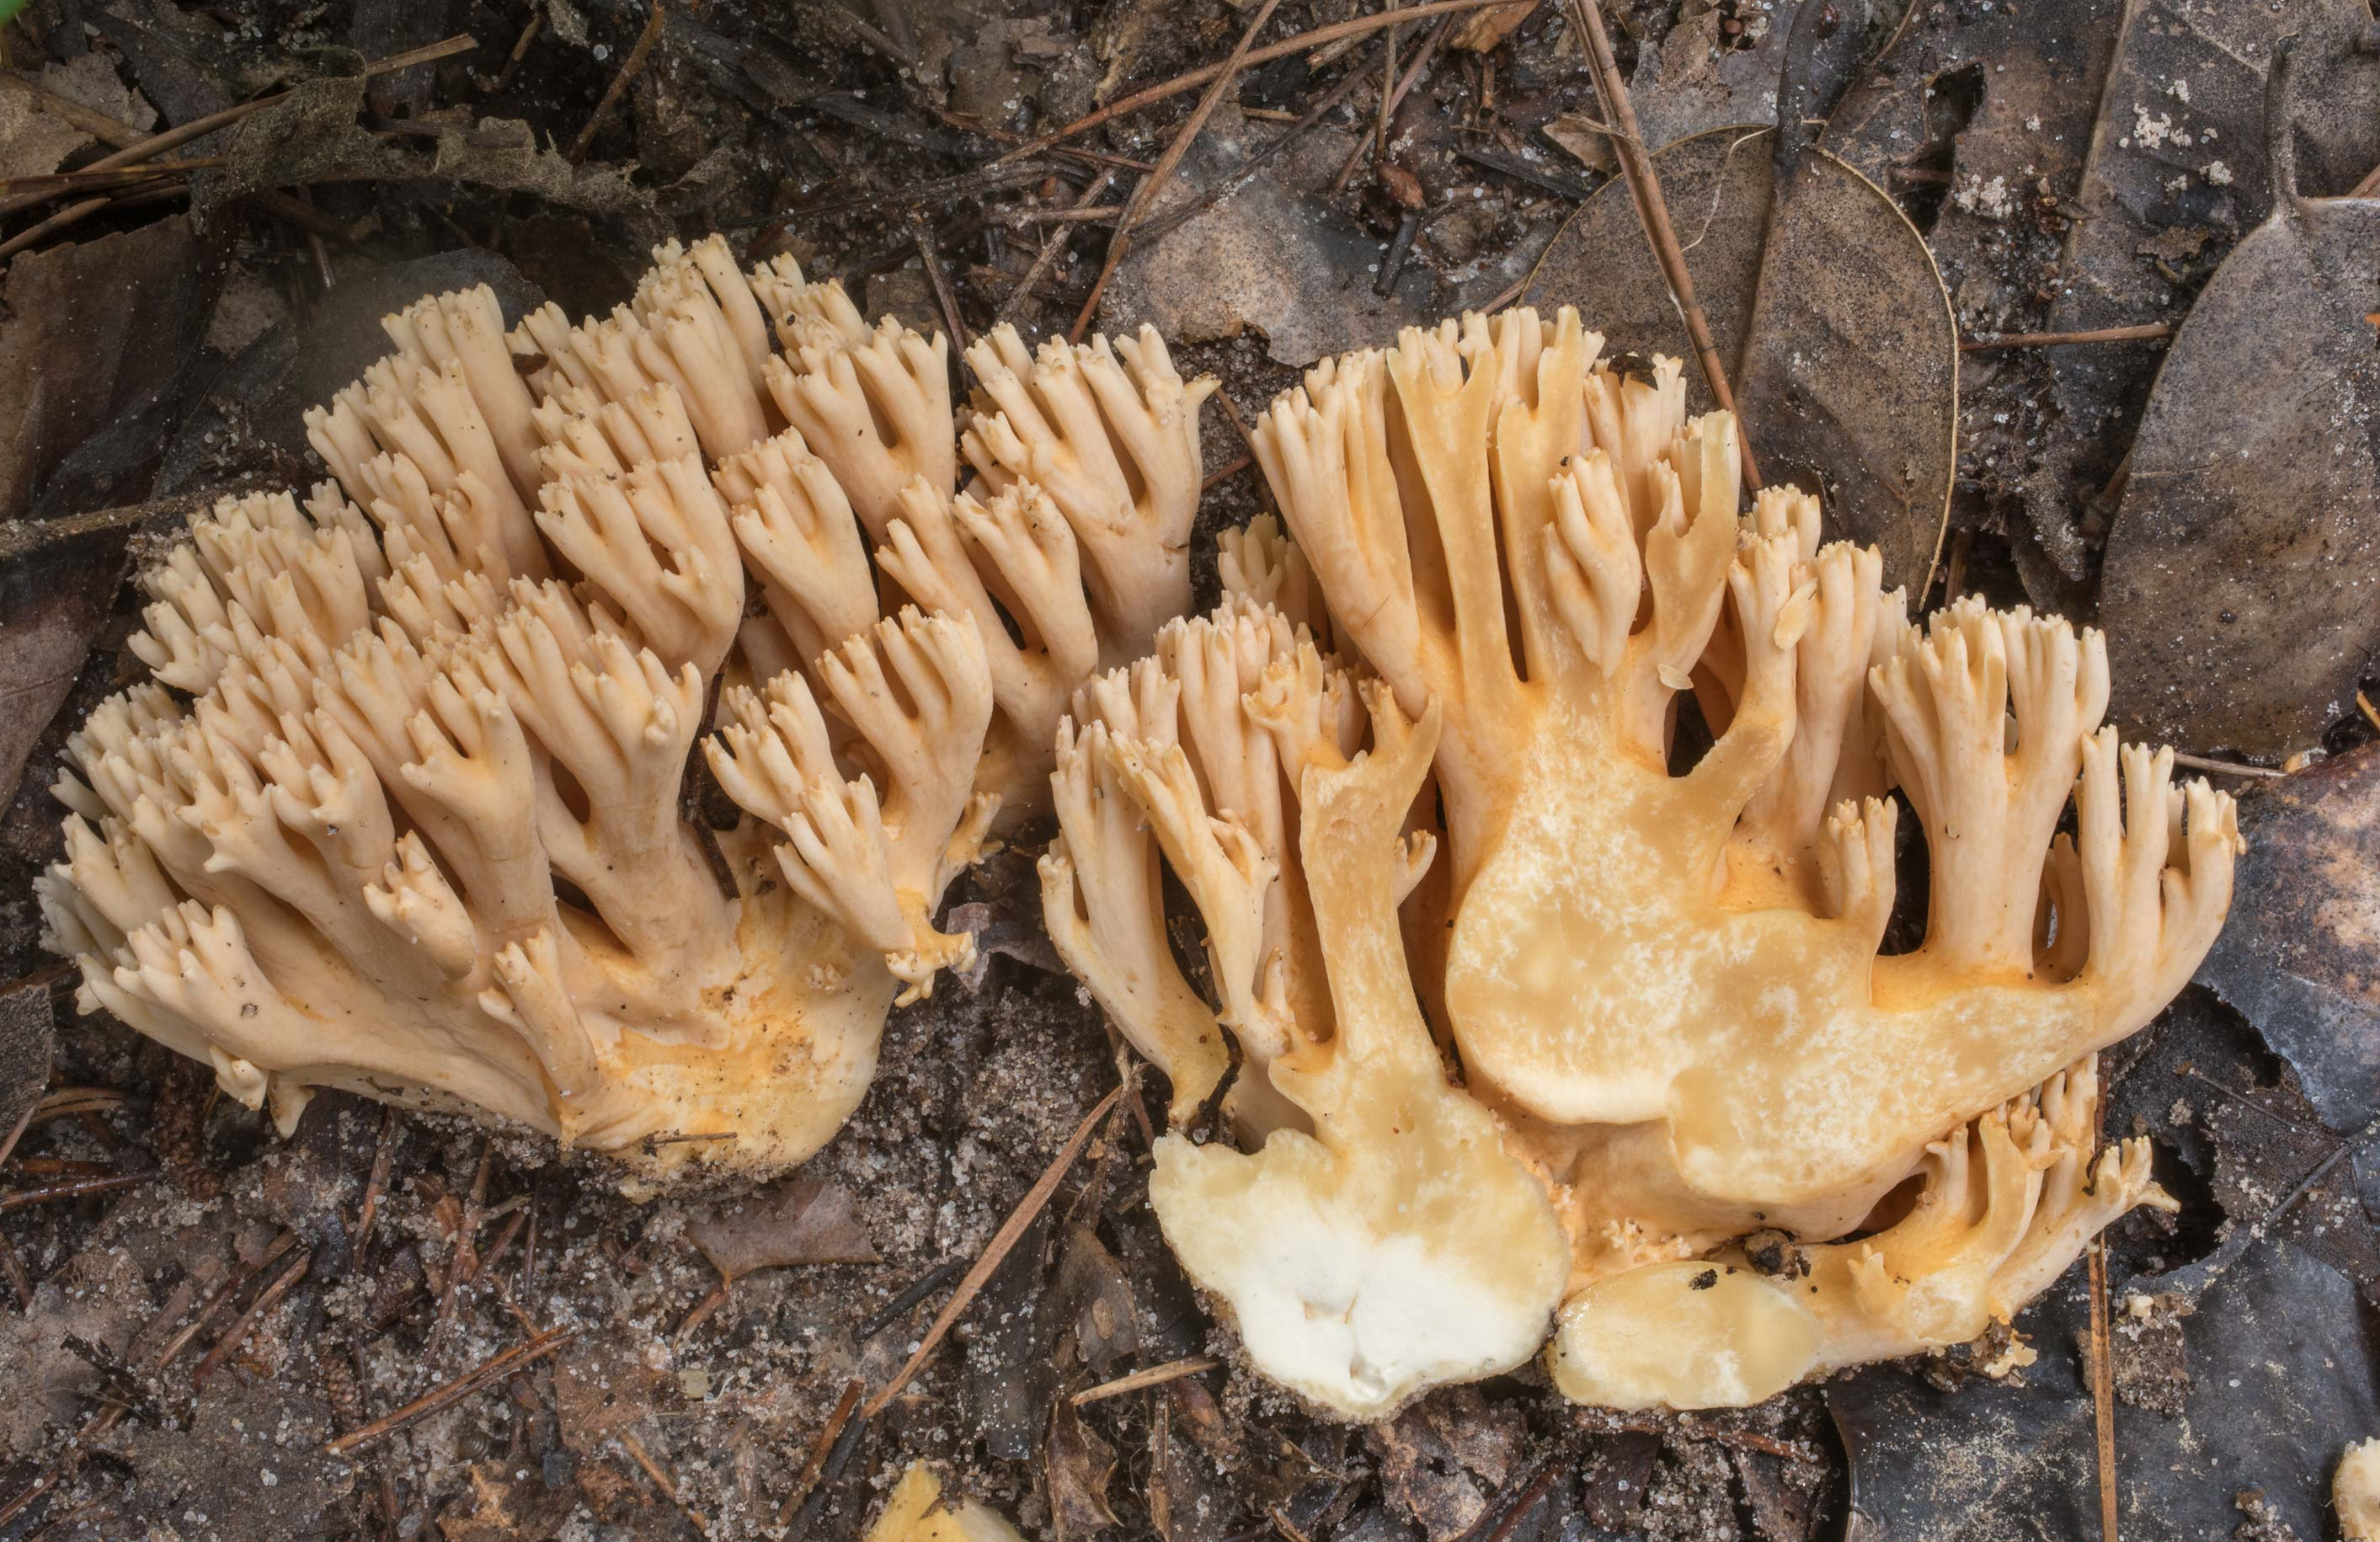 Cross section of salmon coral mushrooms (Ramaria...National Preserve. Warren, Texas